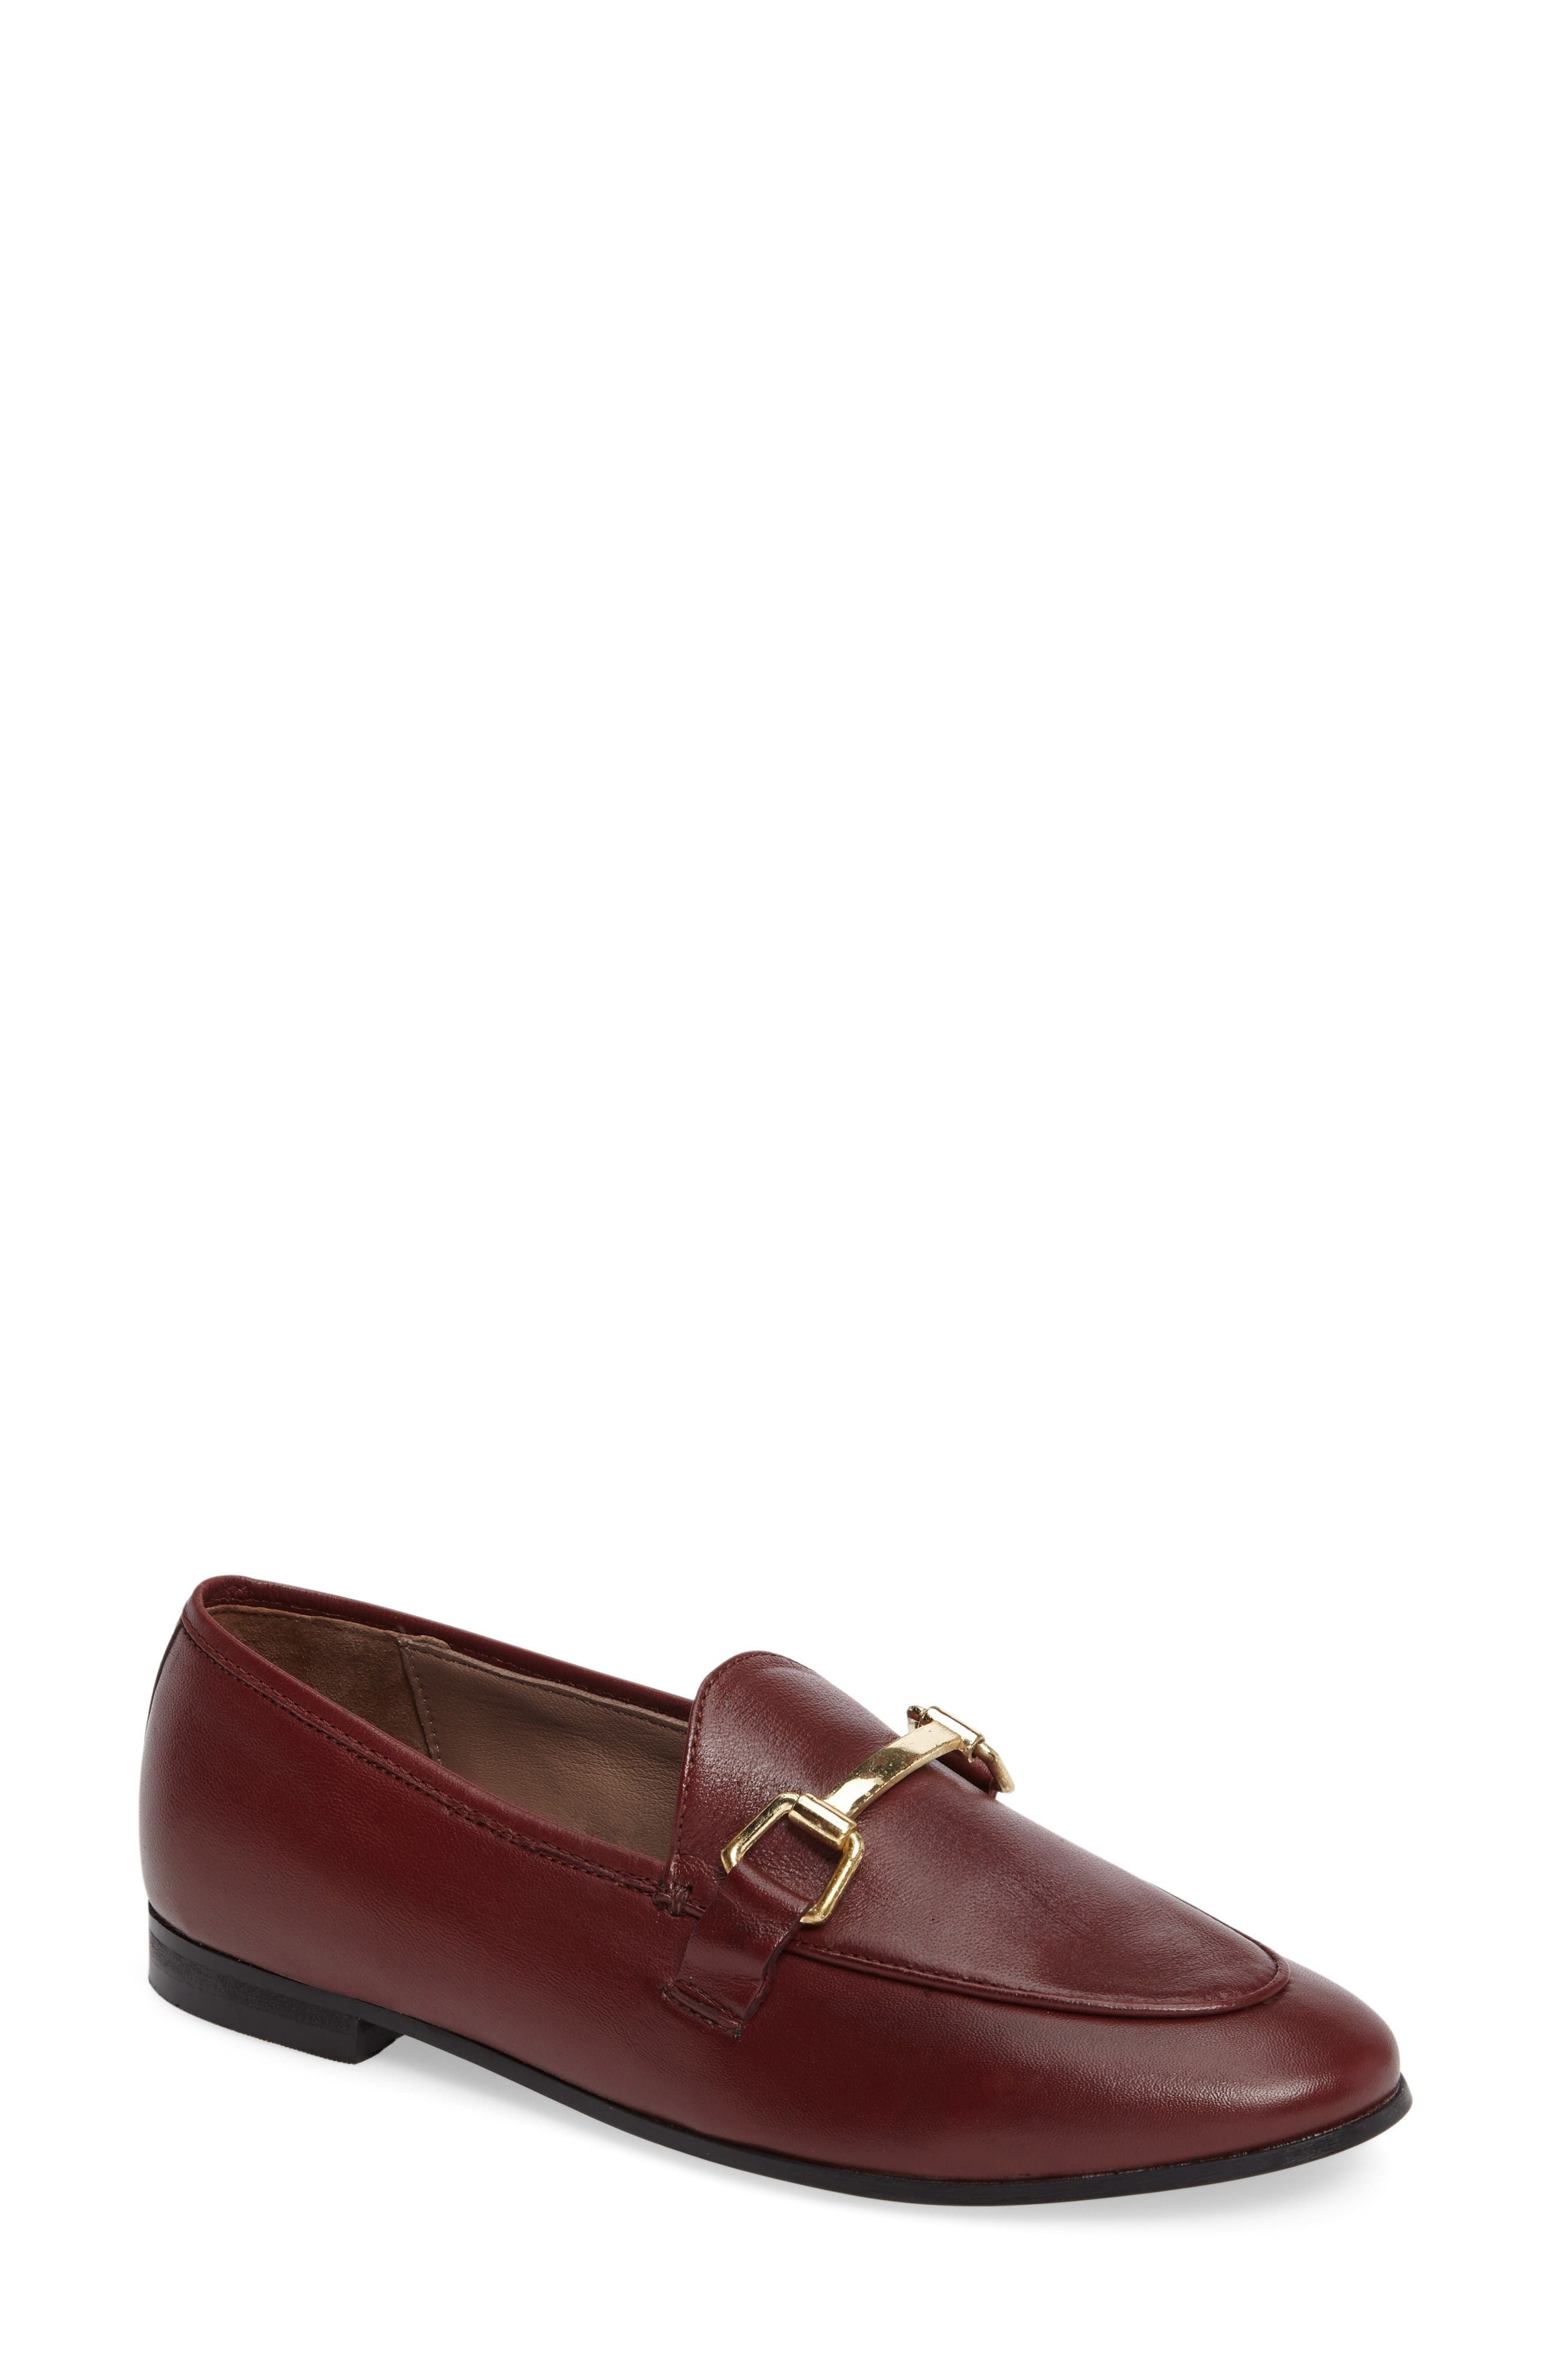 Bit Loafer,                             Main thumbnail 1, color,                             Red